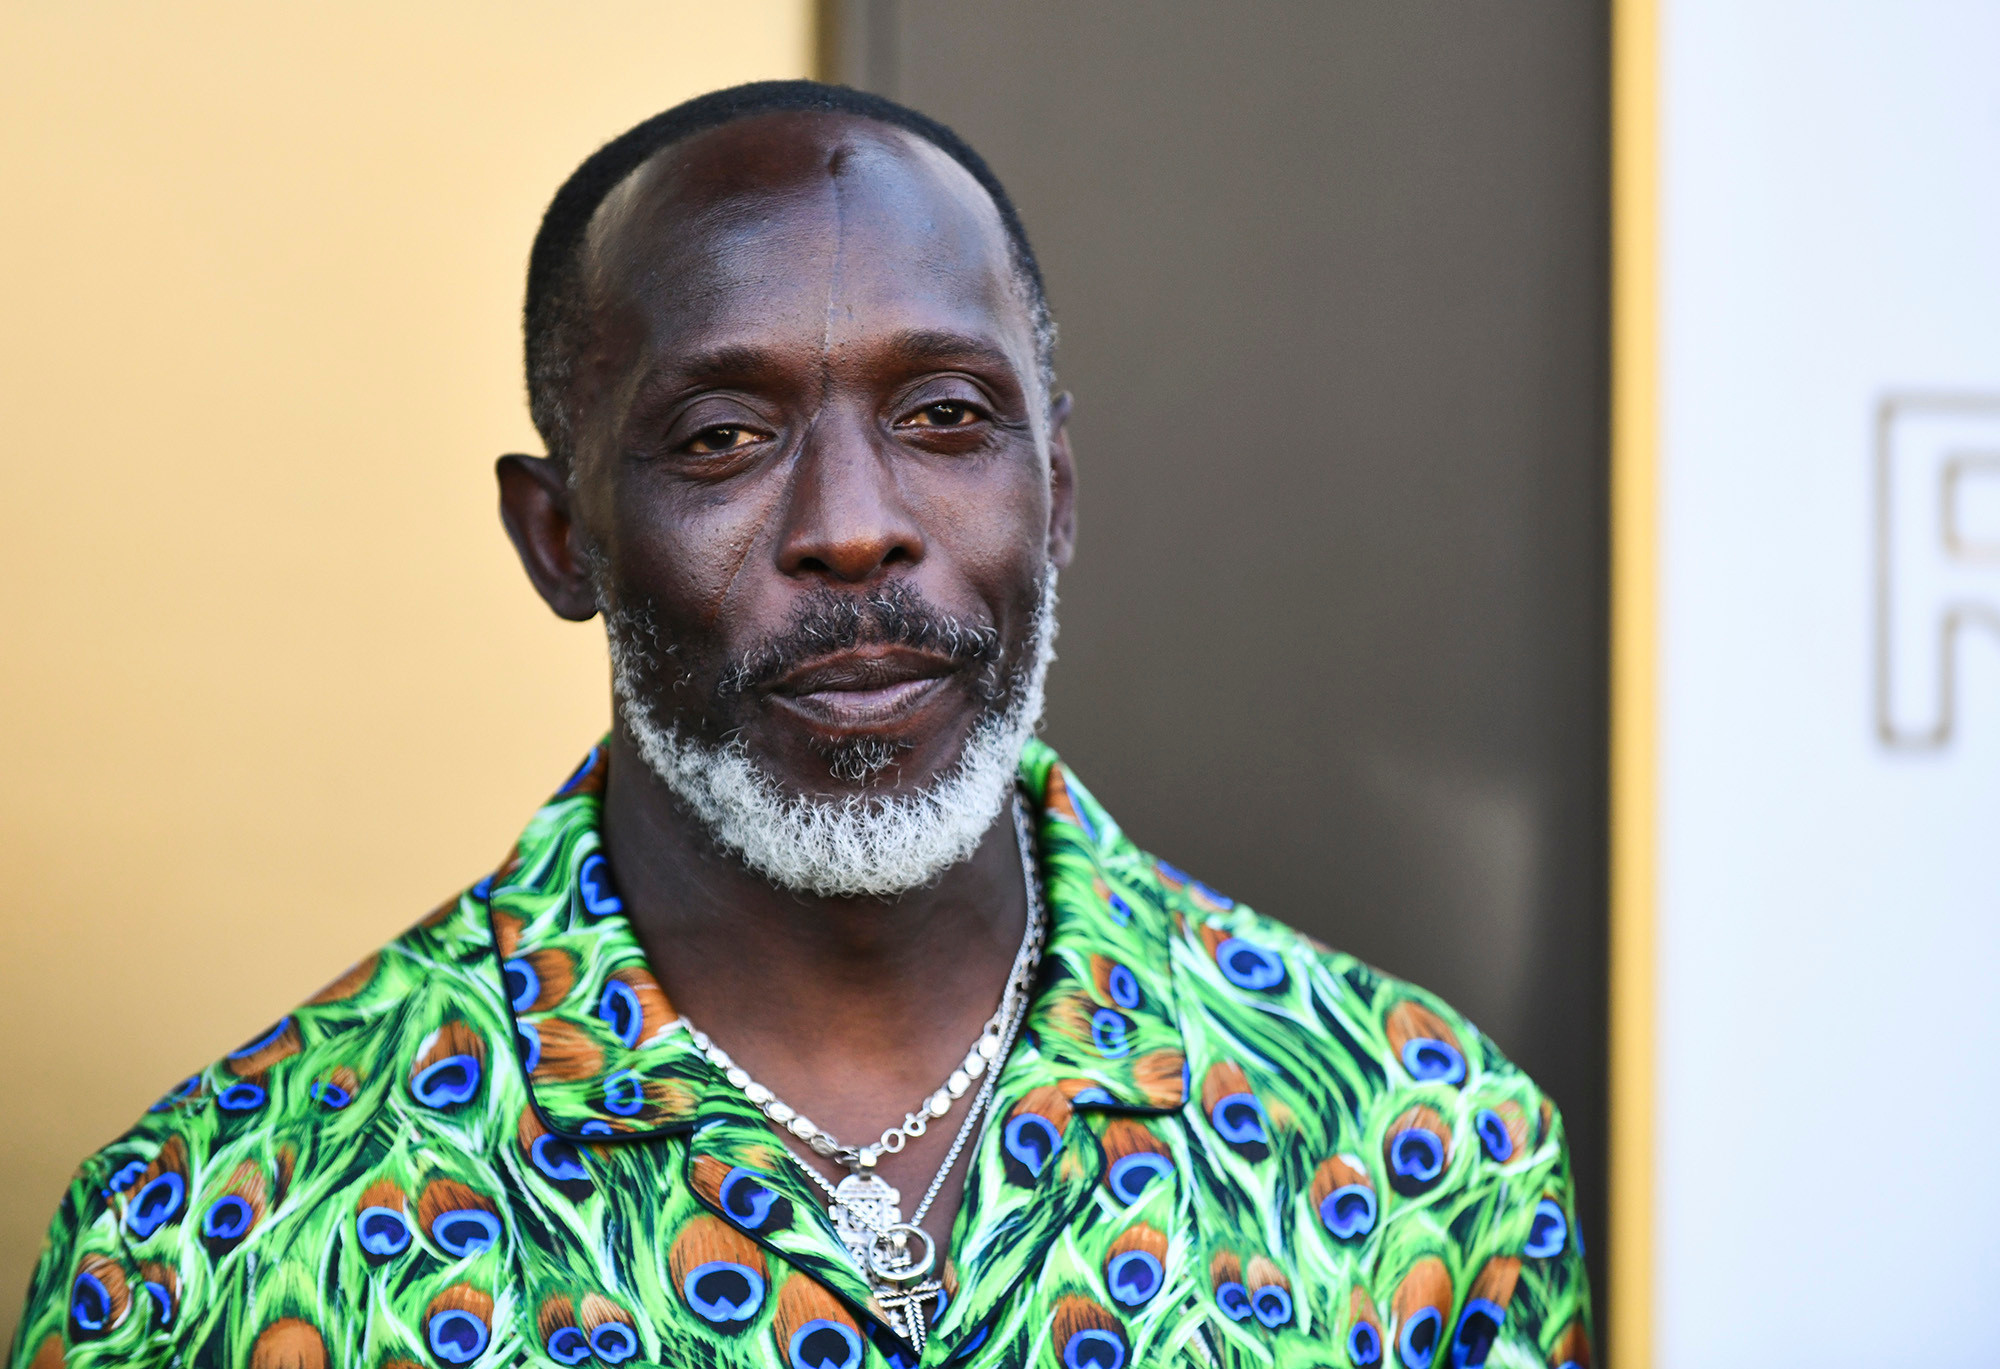 ?The Wire? Actor, Michael K. Williams dies of suspected heroin overdose at 54